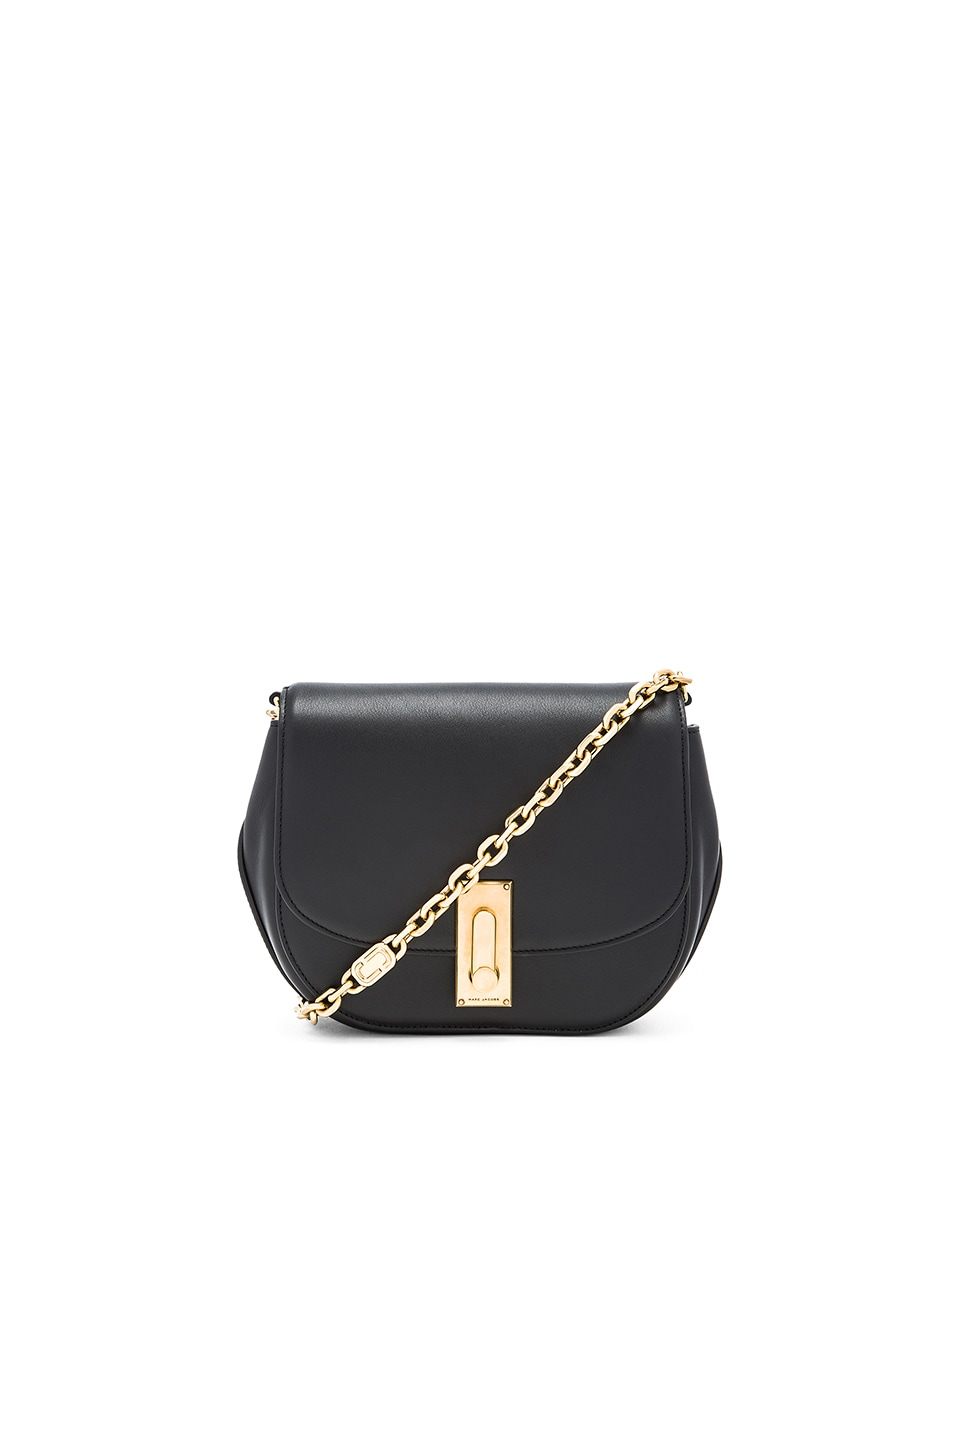 Marc Jacobs West End The Jane Crossbody Bag in Black